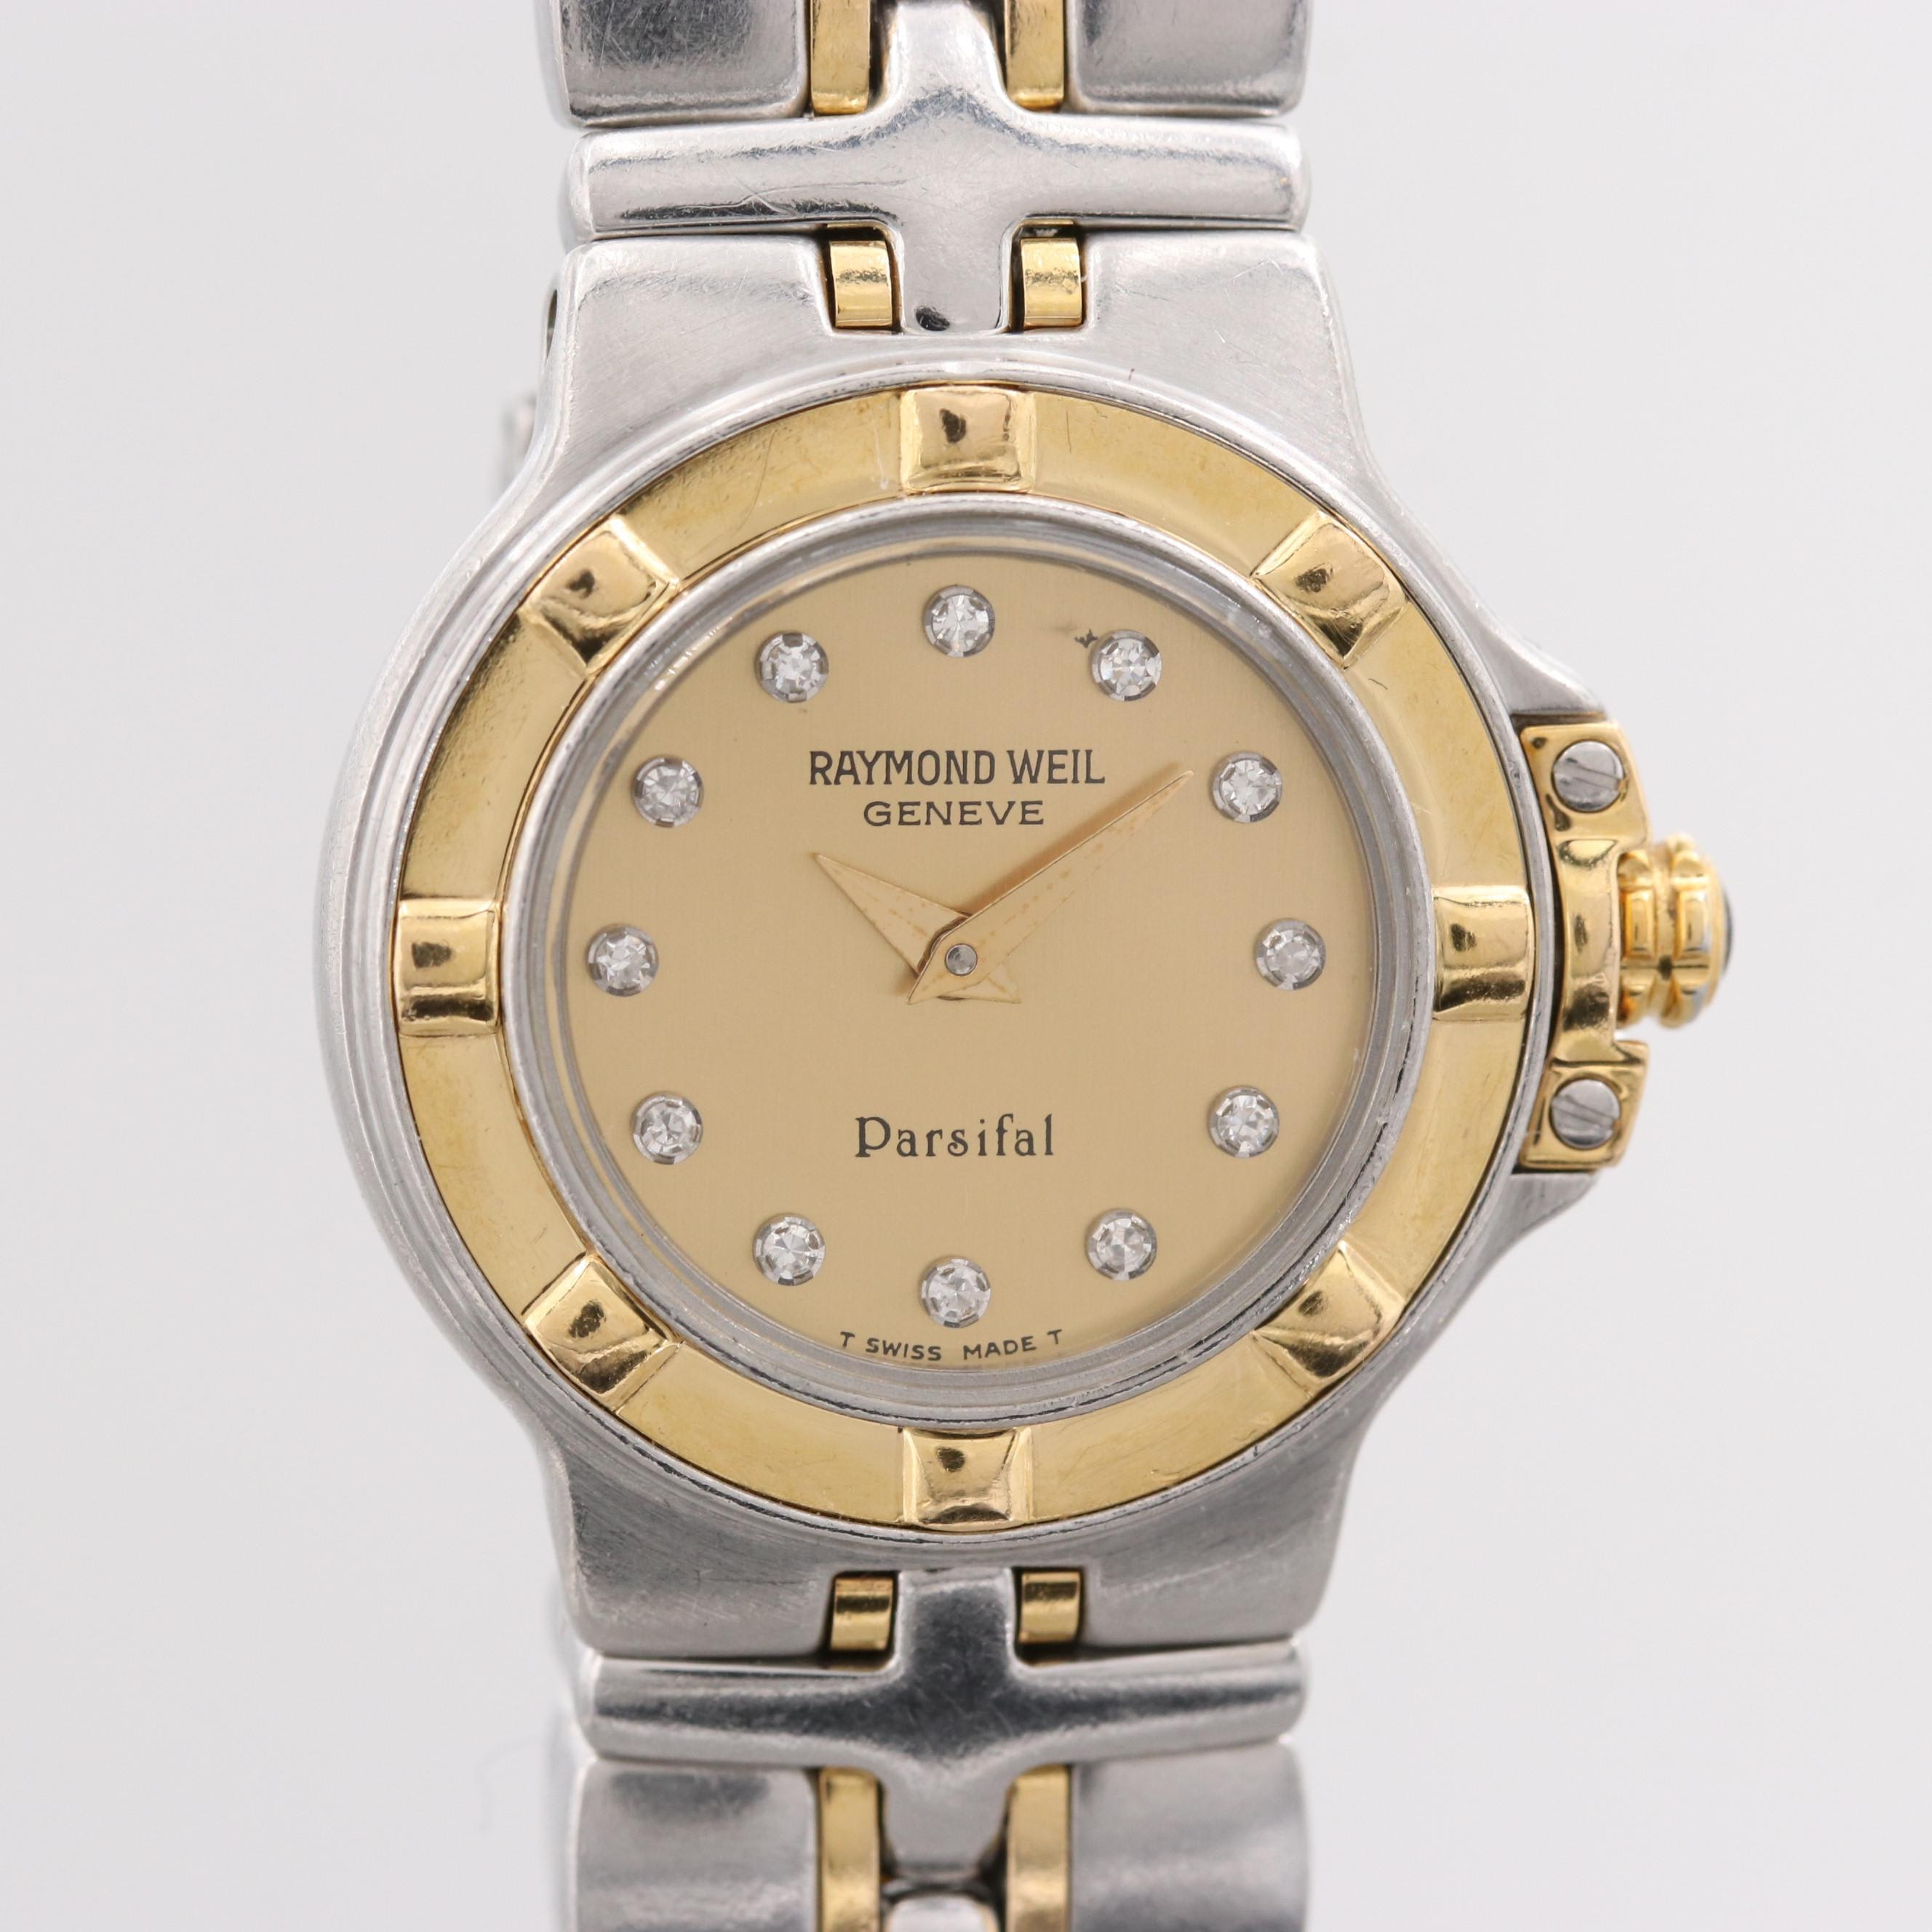 Raymond Weil Parsifal Two Tone Stainless Steel Wristwatch With Diamond Dial